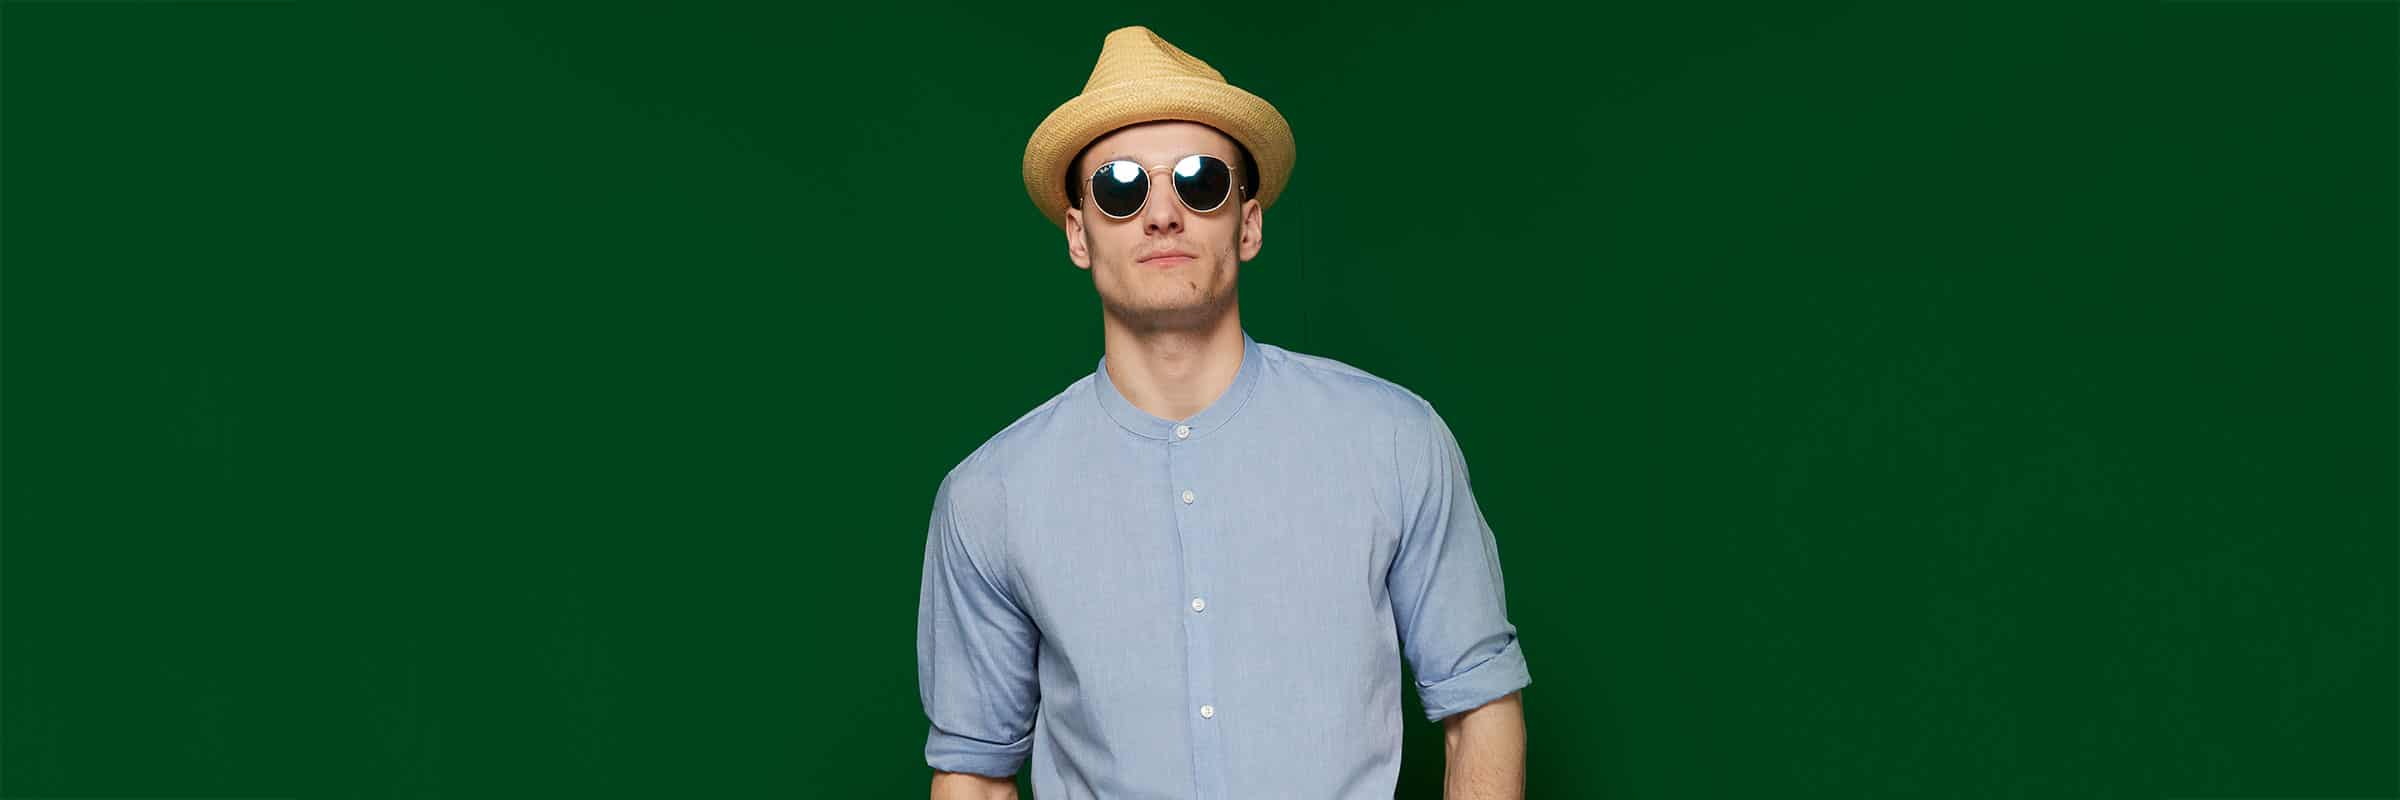 Top Men s Caps   Hats for Summer 2017 - Brixton d4a3b7b1f465